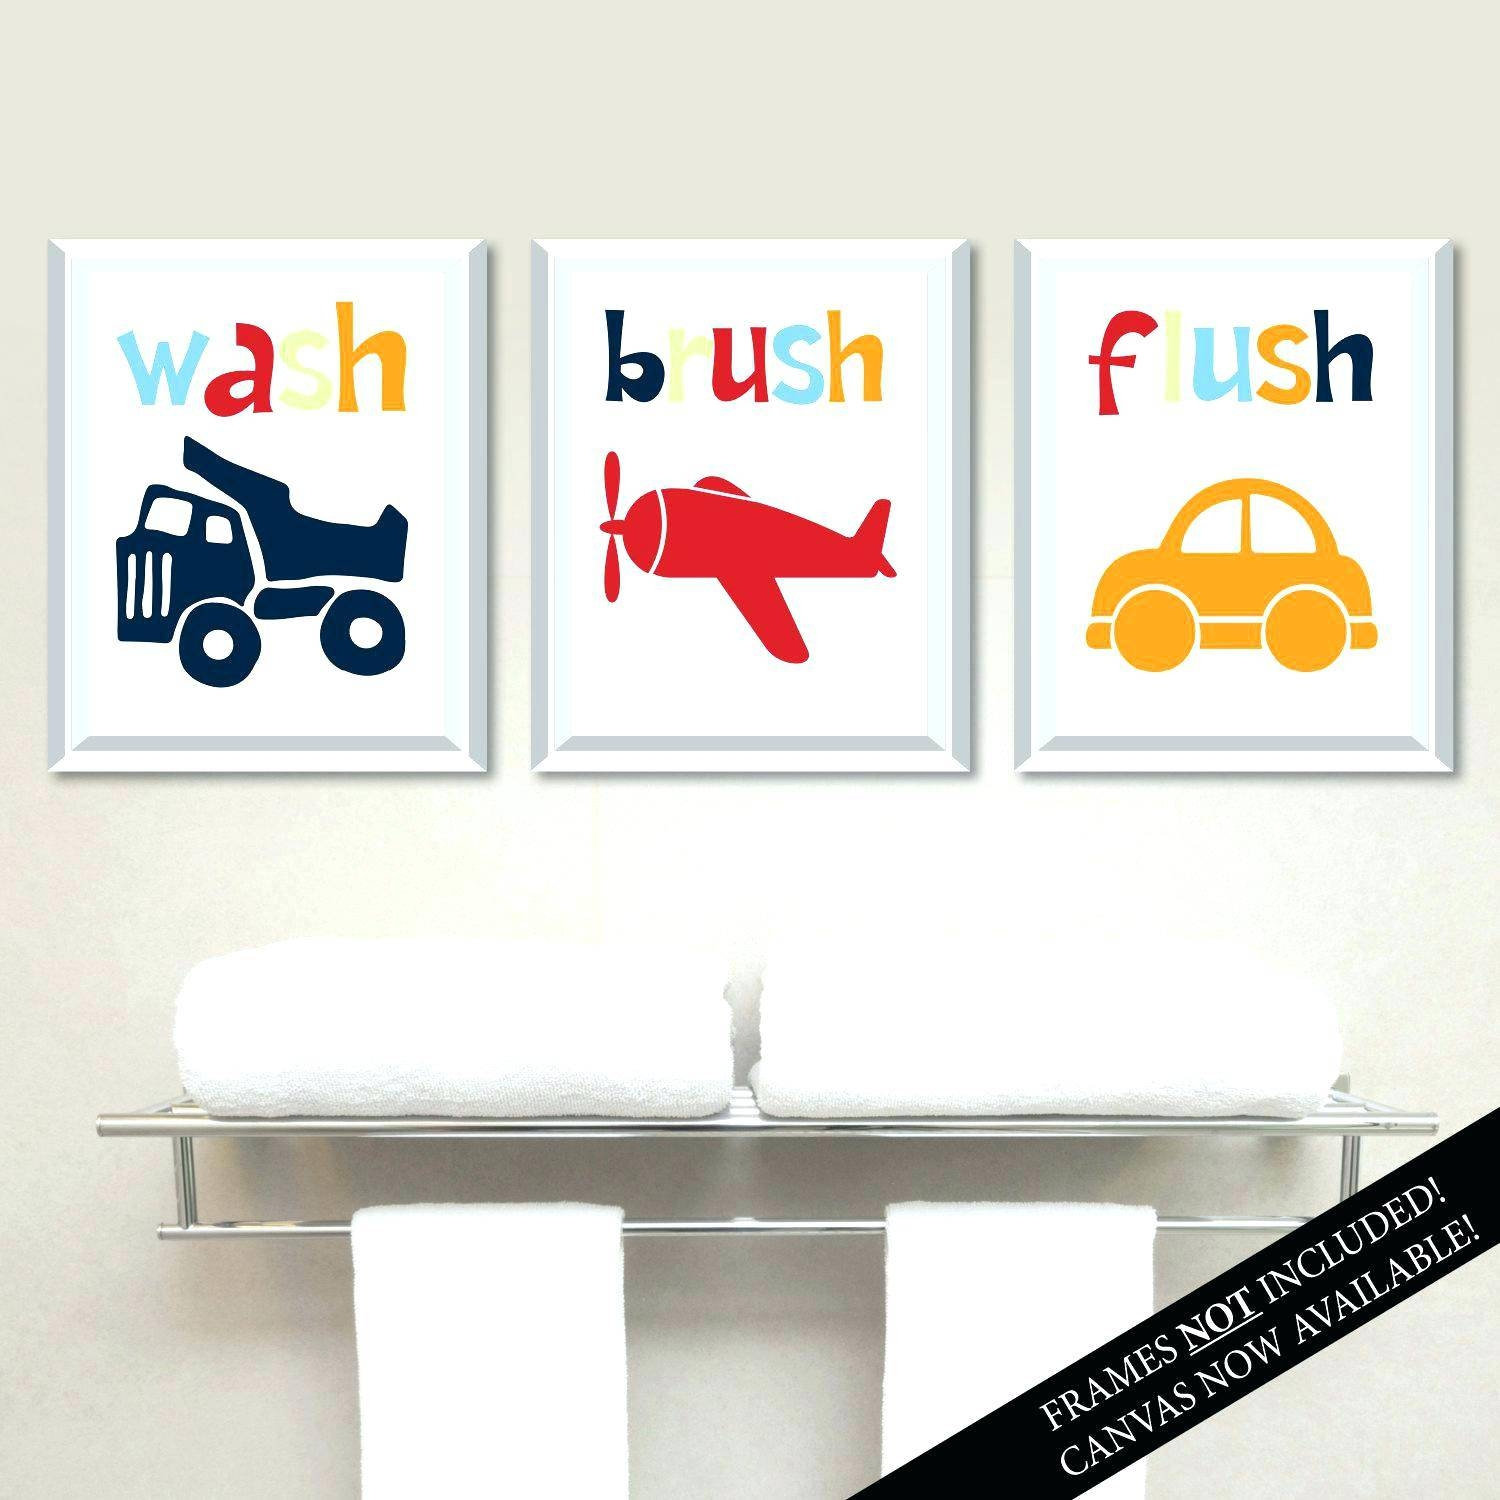 Wall Decals For Kids Bathroom – Gutesleben With Regard To Latest Kids Bathroom Wall Art (View 16 of 20)